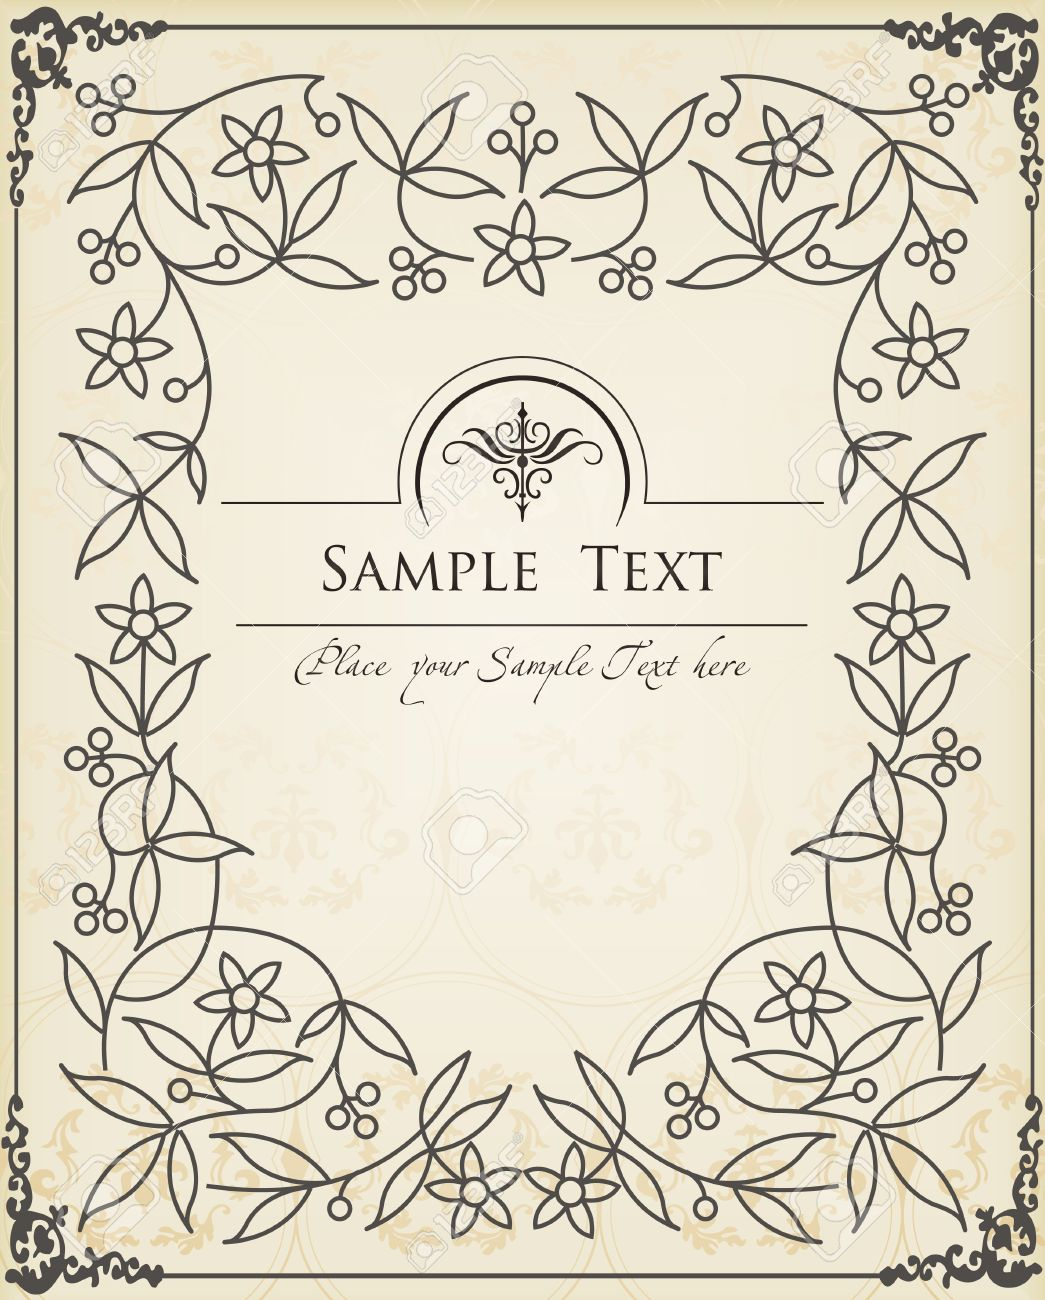 Vintage Book Cover Frame ~ Vector vintage background for book cover or card royalty free